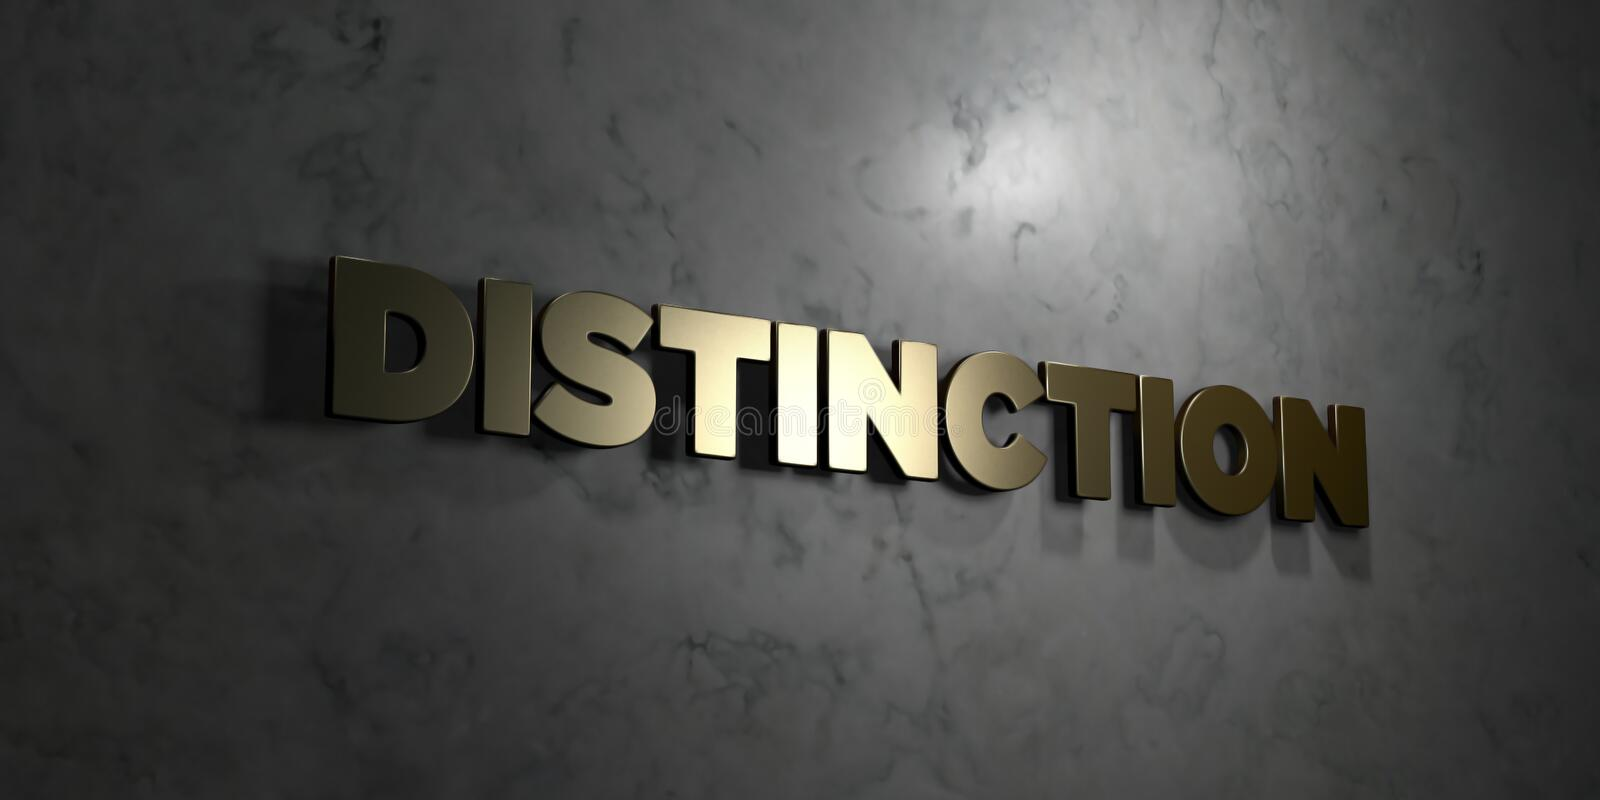 Distinction - Gold text on black background - 3D rendered royalty free stock picture. This image can be used for an online website banner ad or a print vector illustration